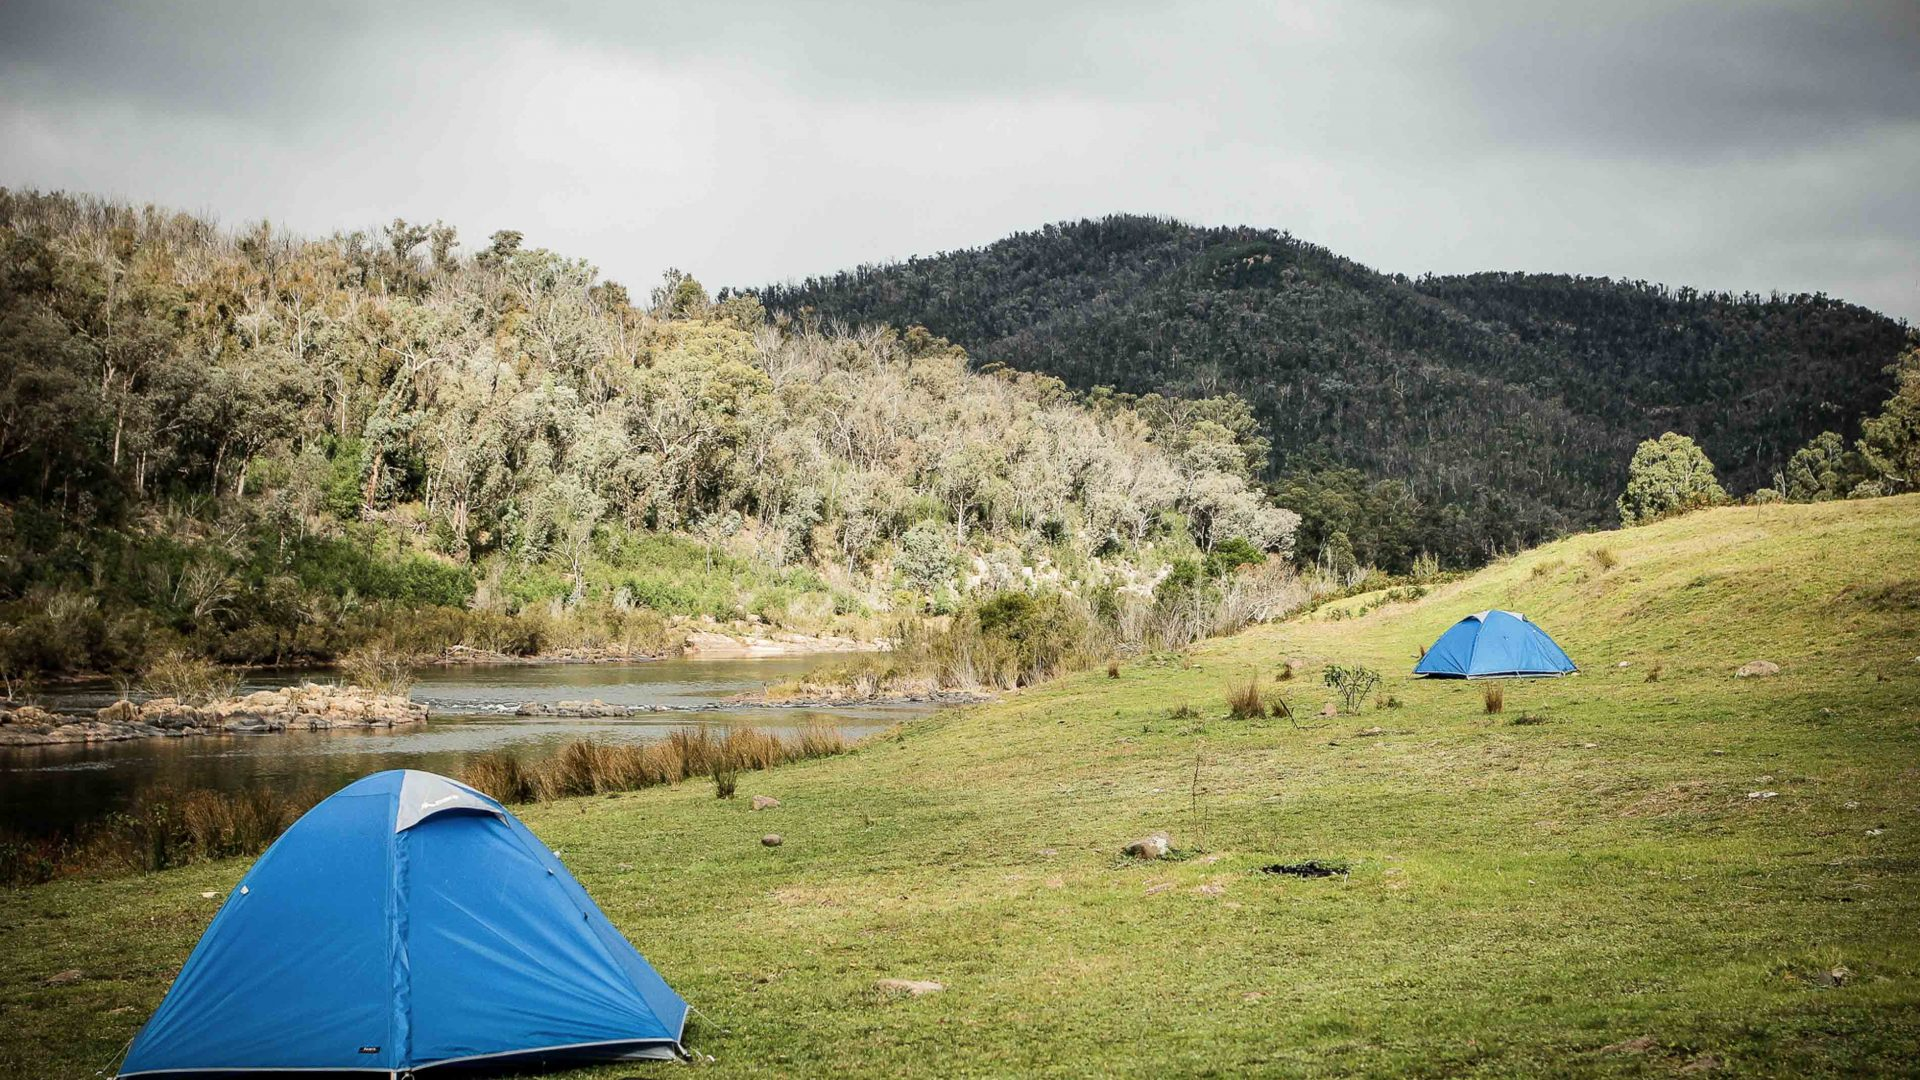 Tents set up in Snowy River National Park, Victoria, Australia.